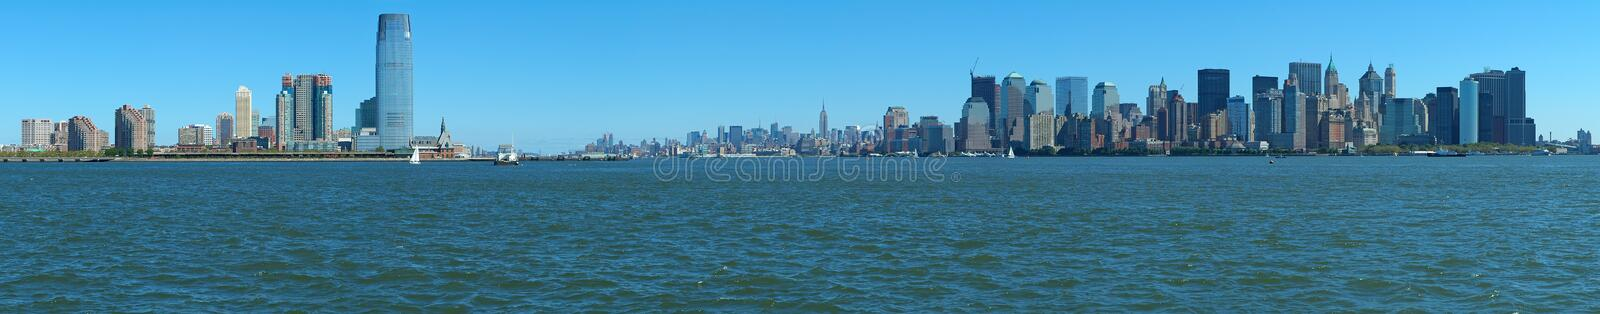 New york and jersey panorama. New York's Manhattan and Jersey City panorama photo, water in foreground royalty free stock photo